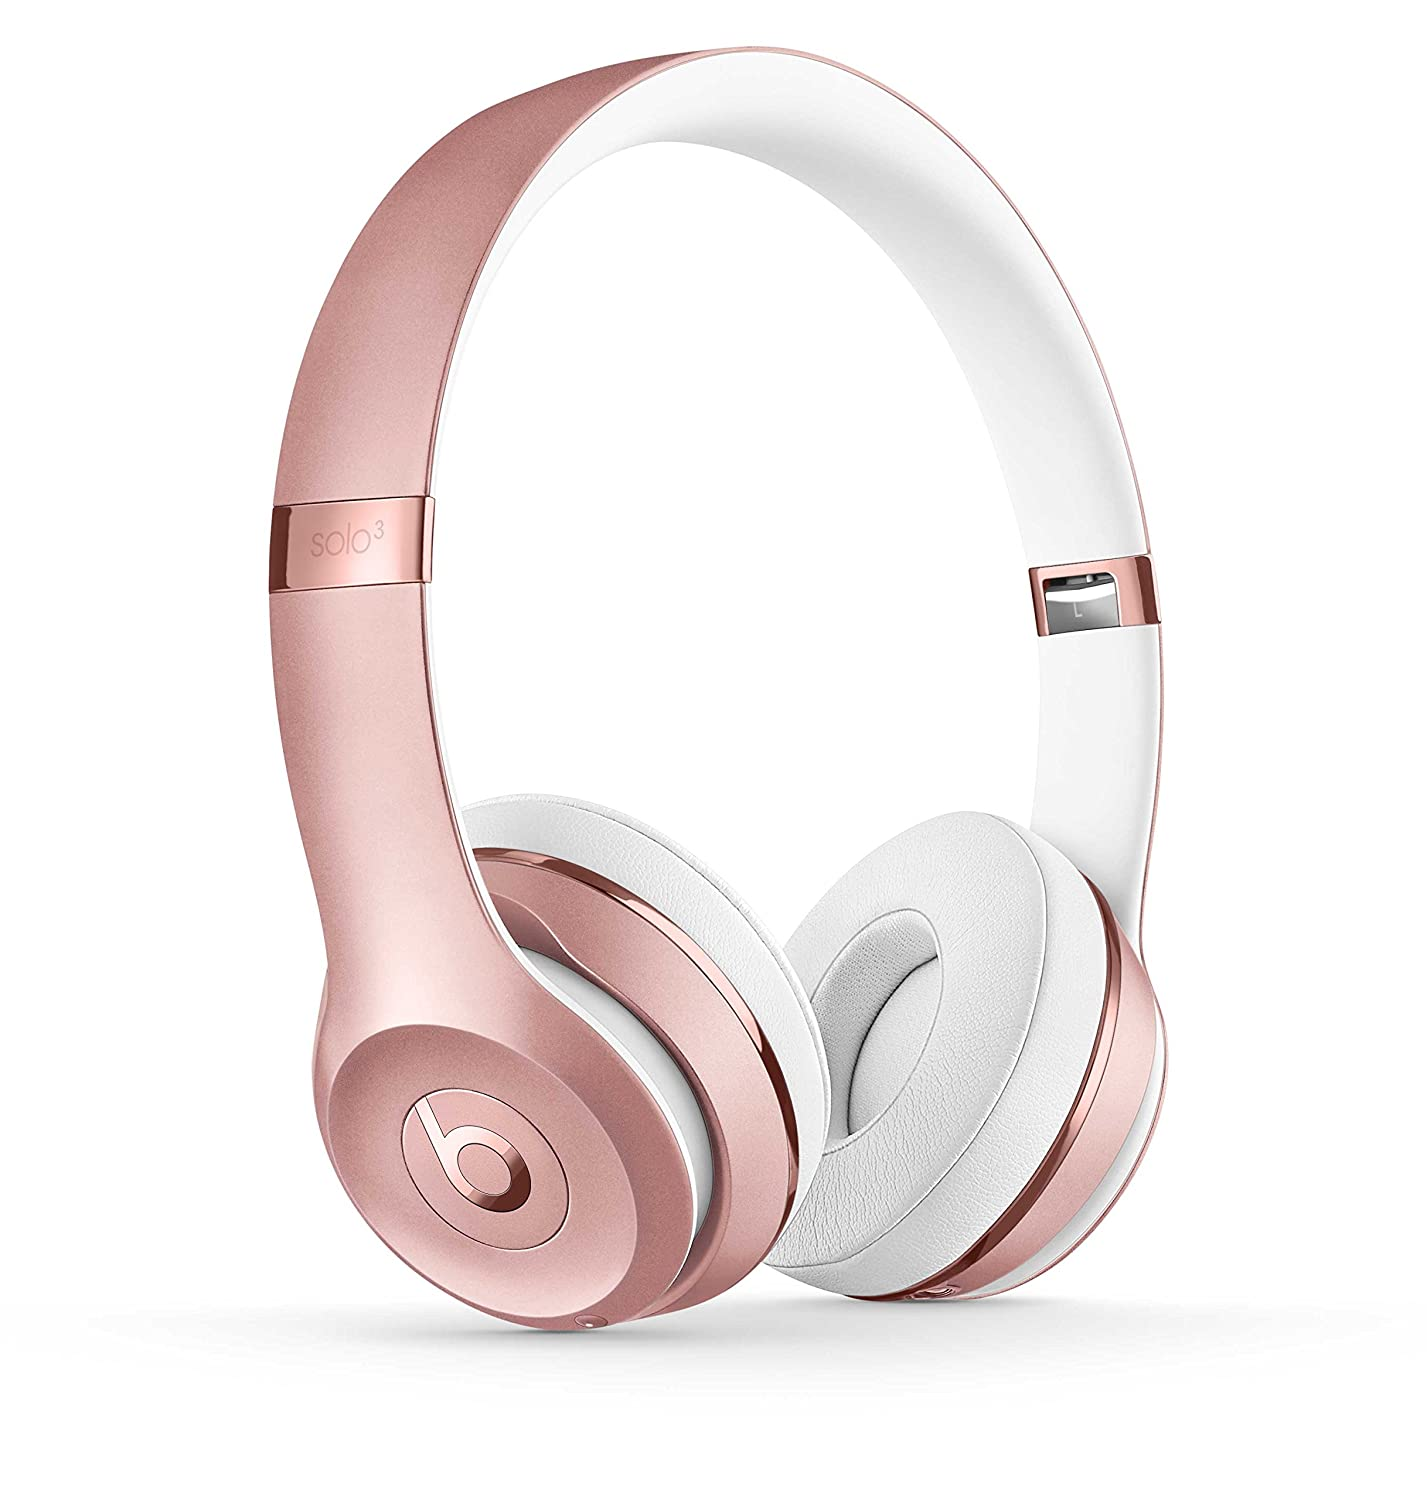 Beats Solo3 Wireless On-Ear Headphones - Rose Gold.best wireless headphones 2019